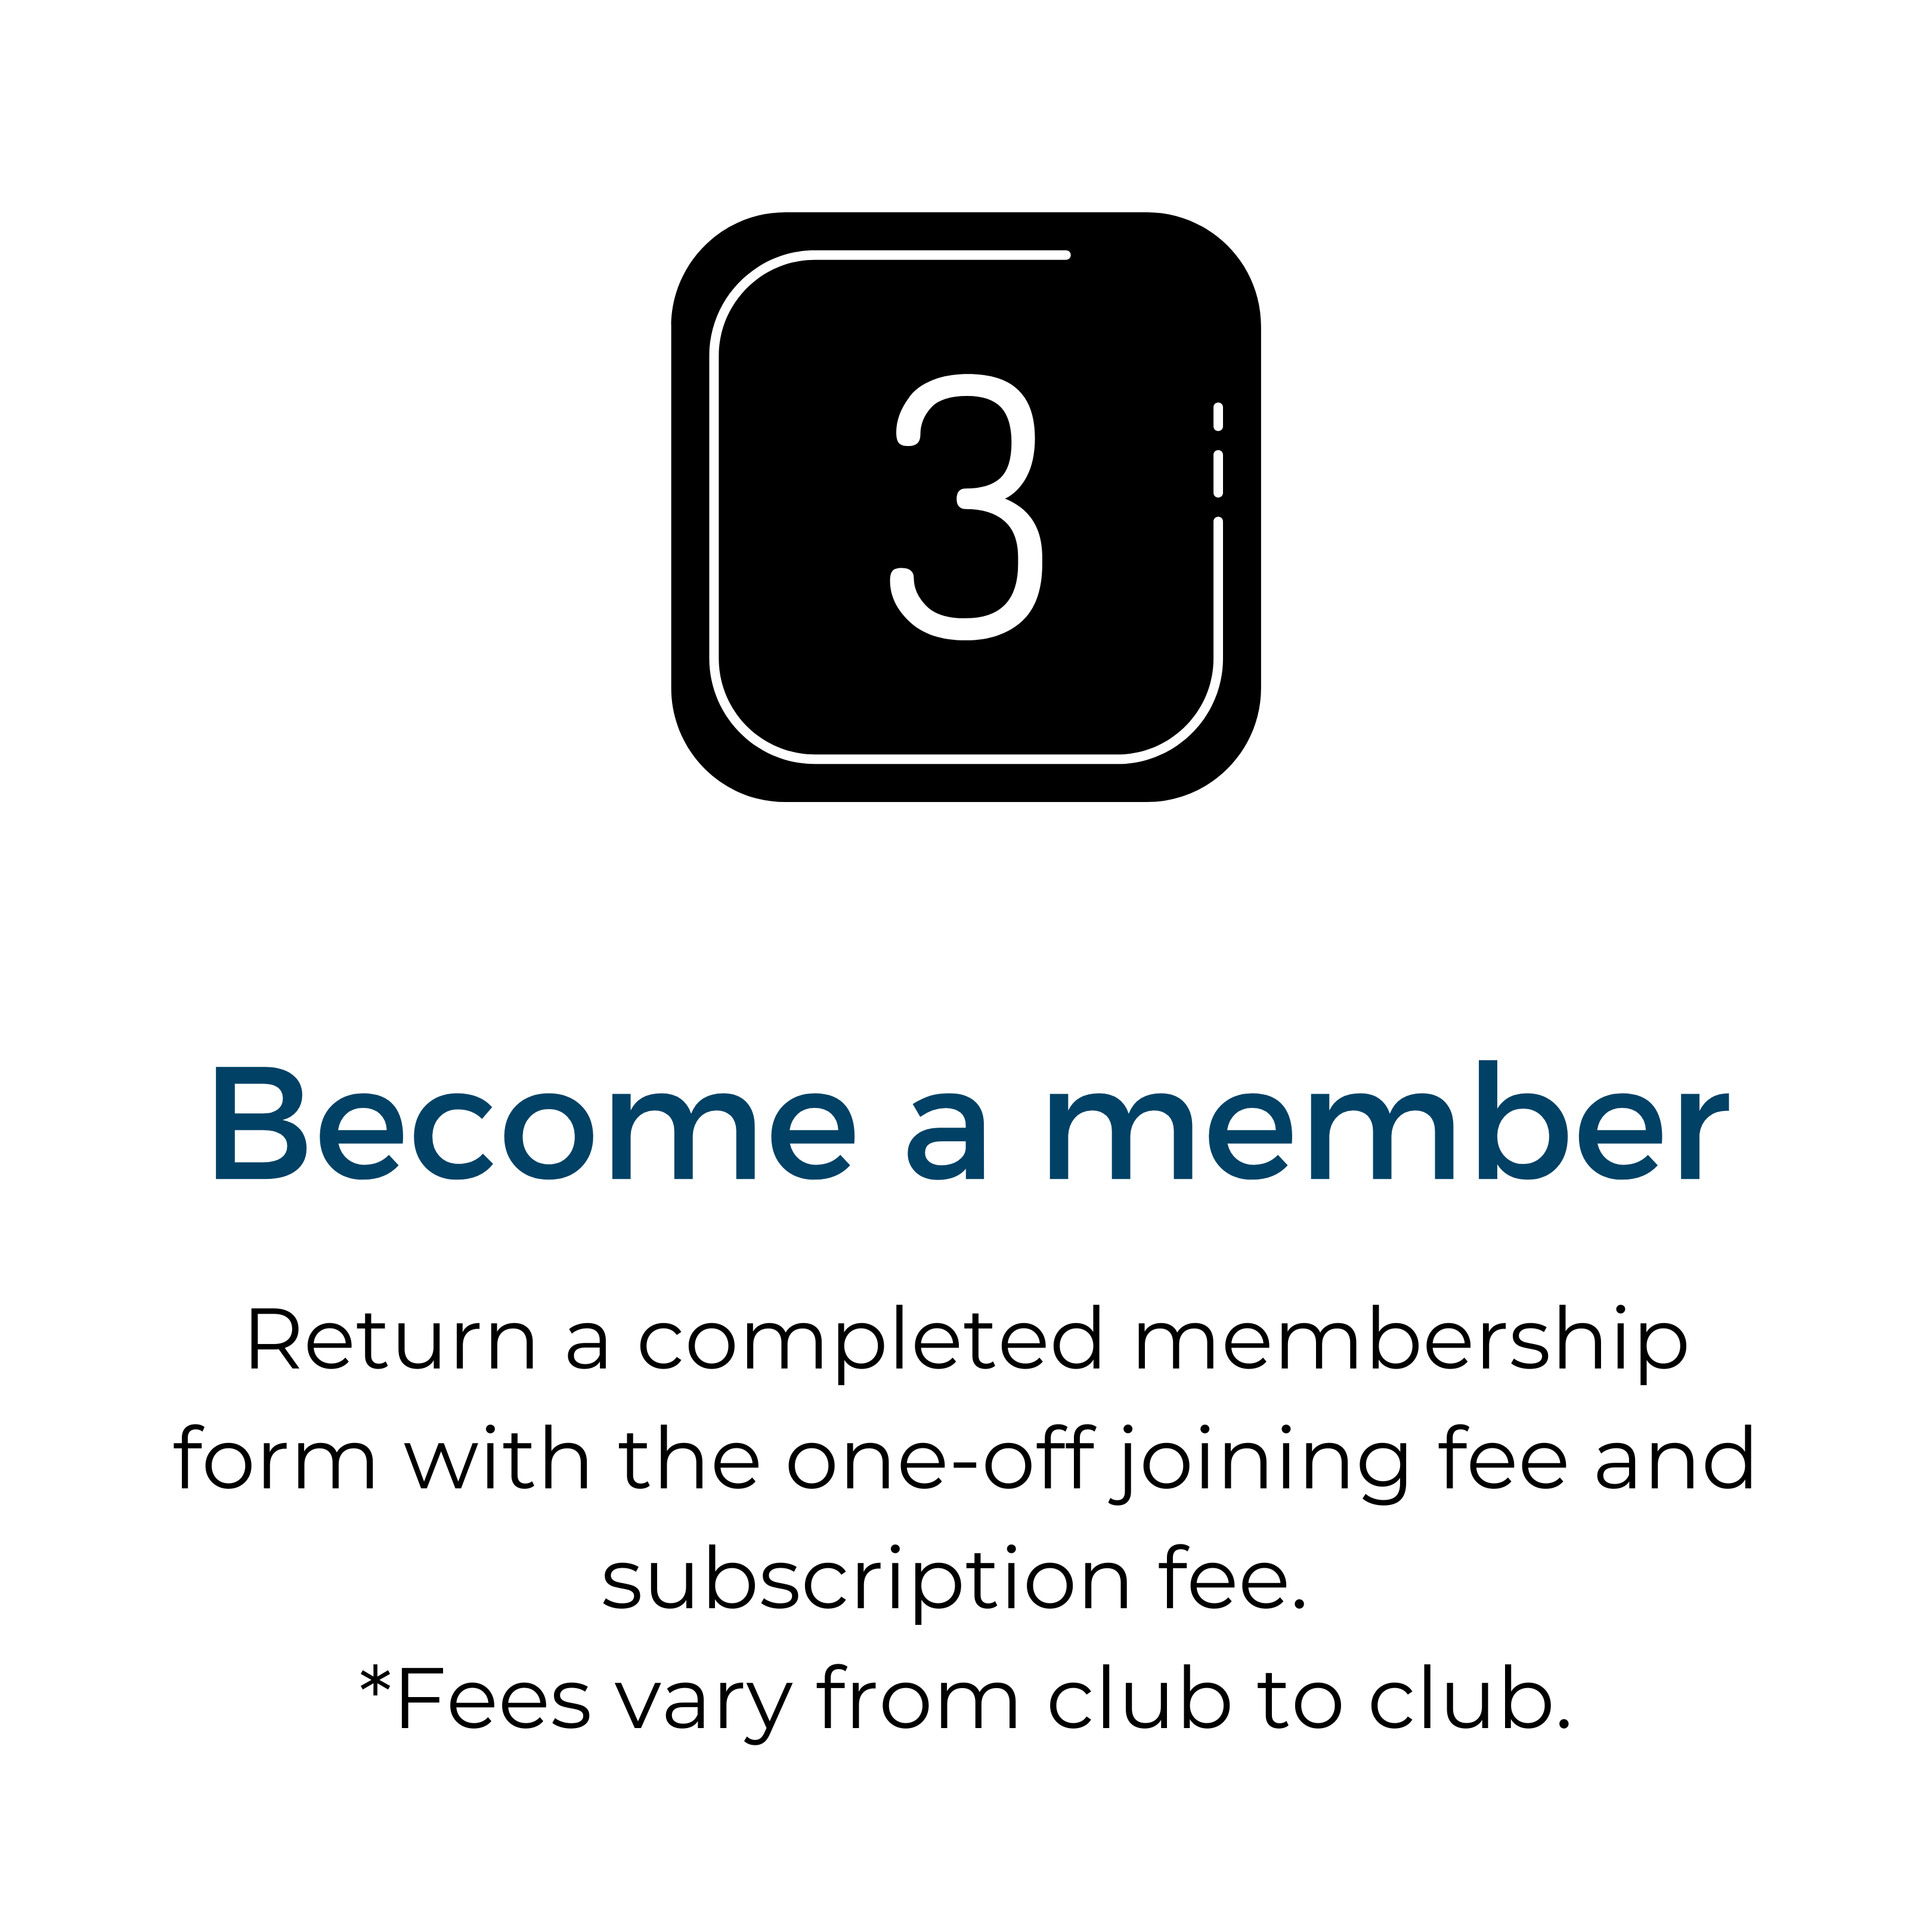 3 Become a member